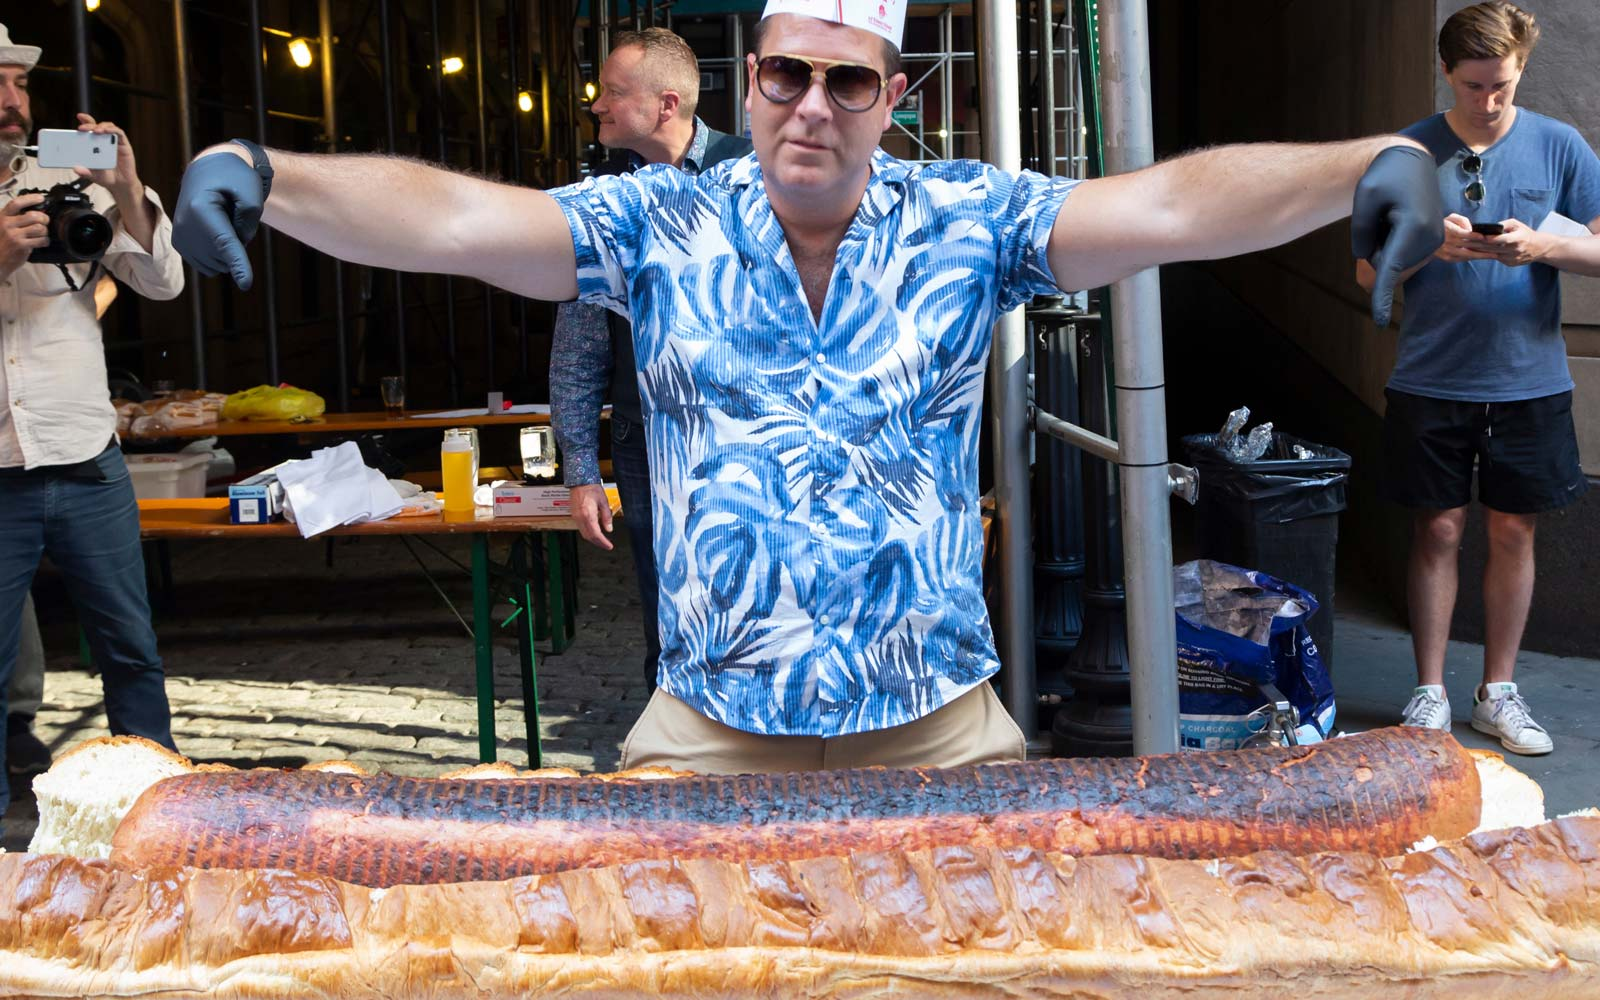 The 'World's Largest Hot Dog' Is 5 Feet Long and 66 Pounds